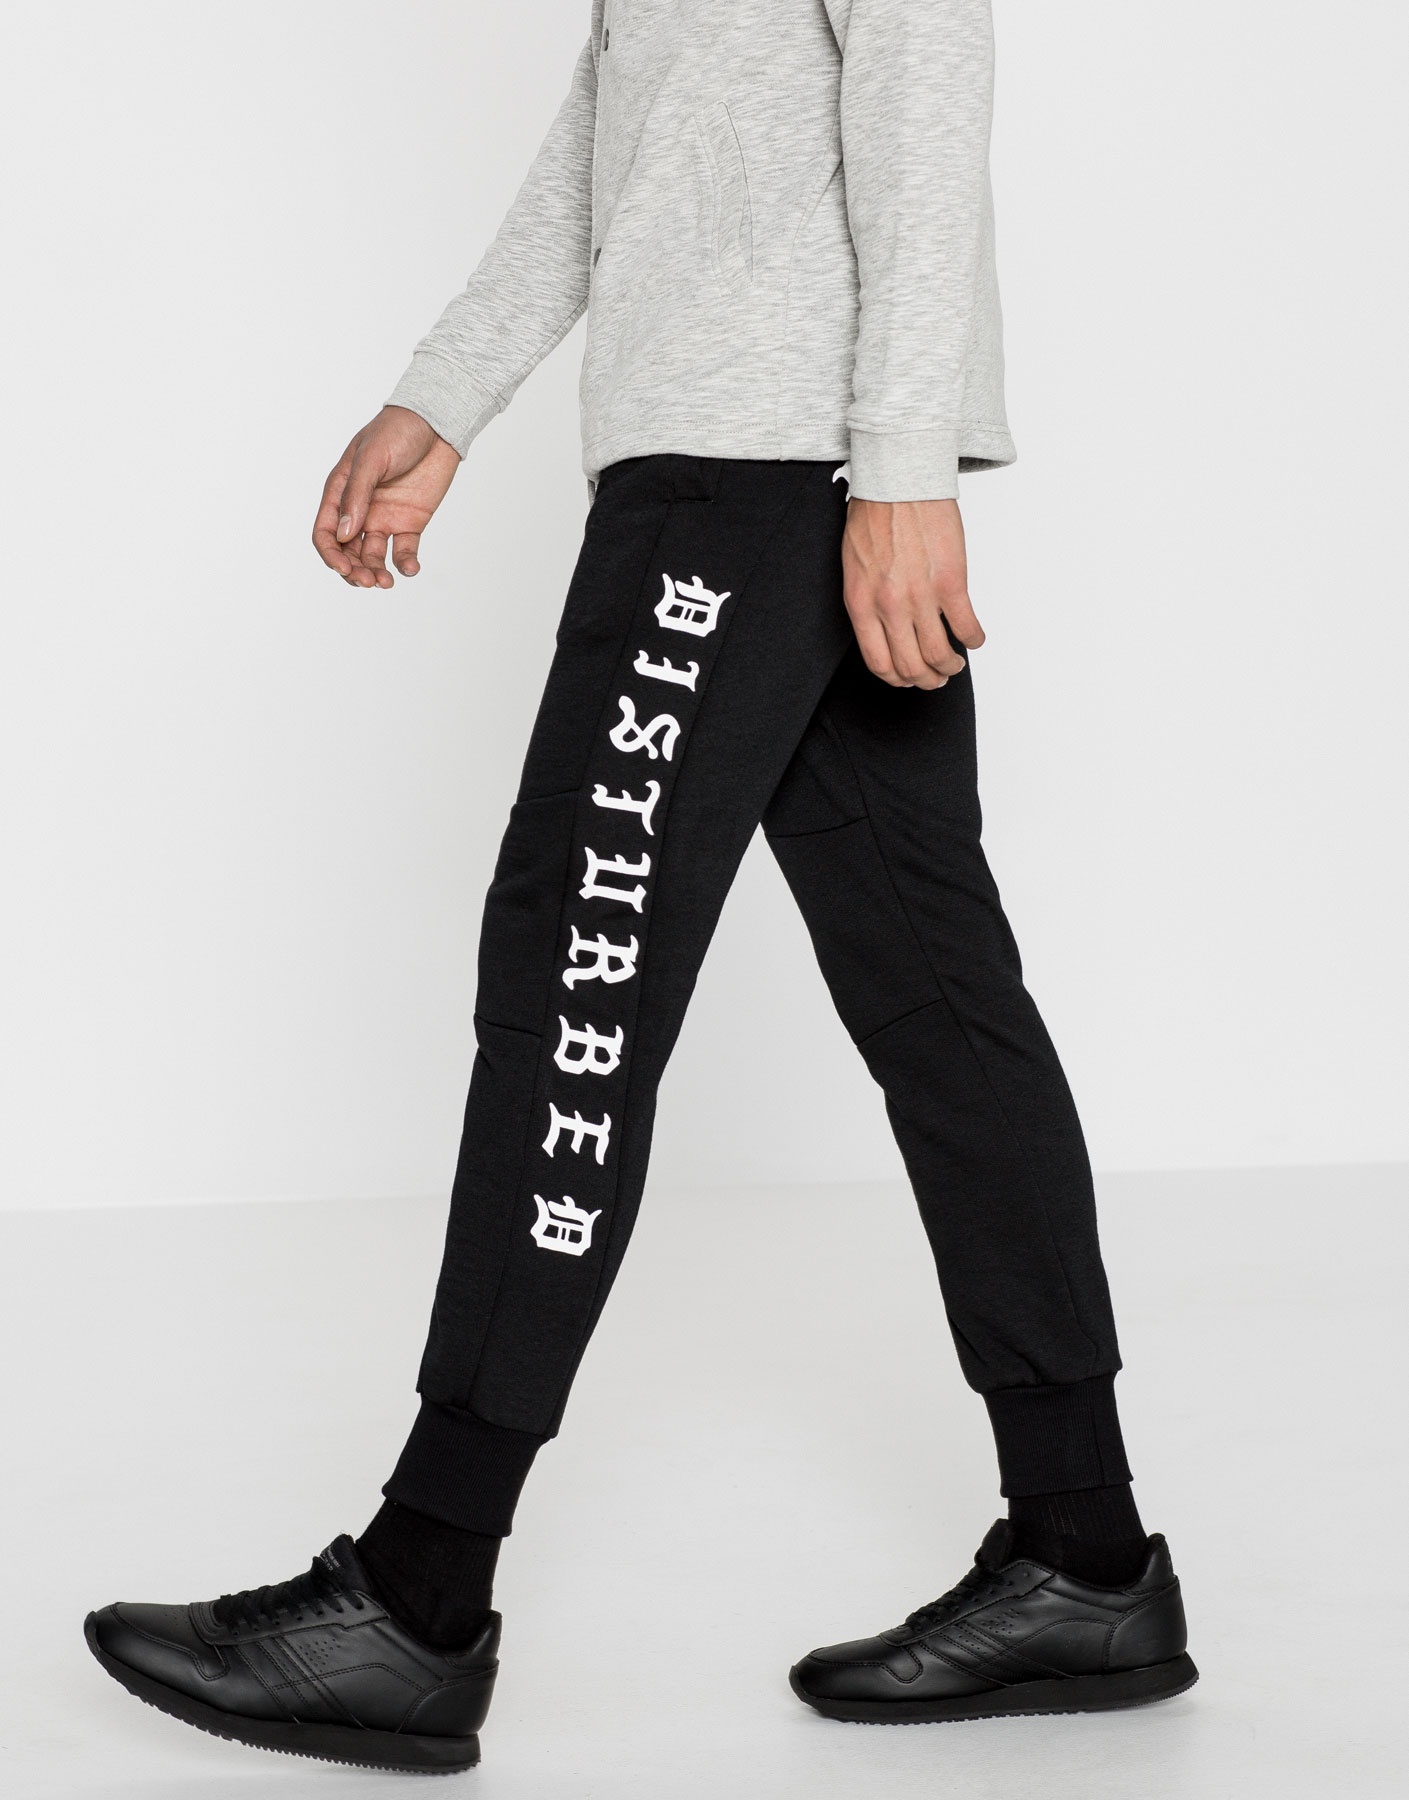 Black printed jogging trousers